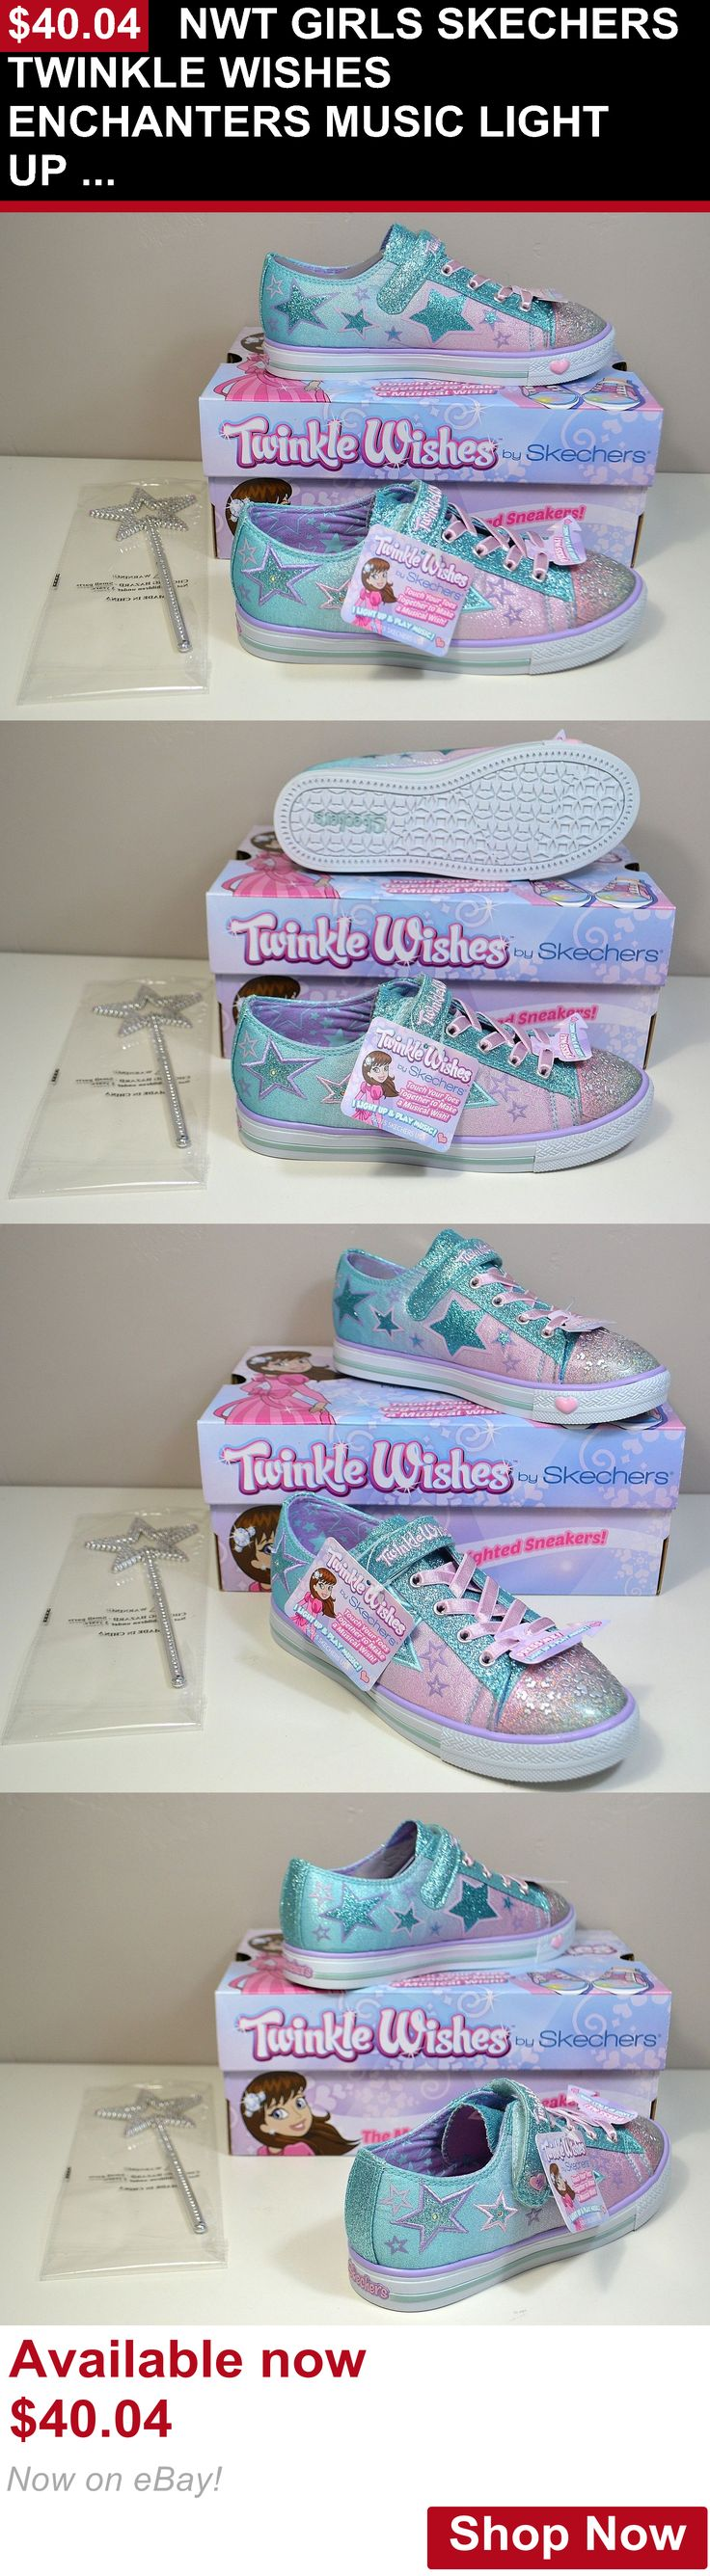 Children girls clothing shoes and accessories: Nwt Girls Skechers Twinkle Wishes Enchanters Music Light Up Shoes Sz 11C-3Y BUY IT NOW ONLY: $40.04